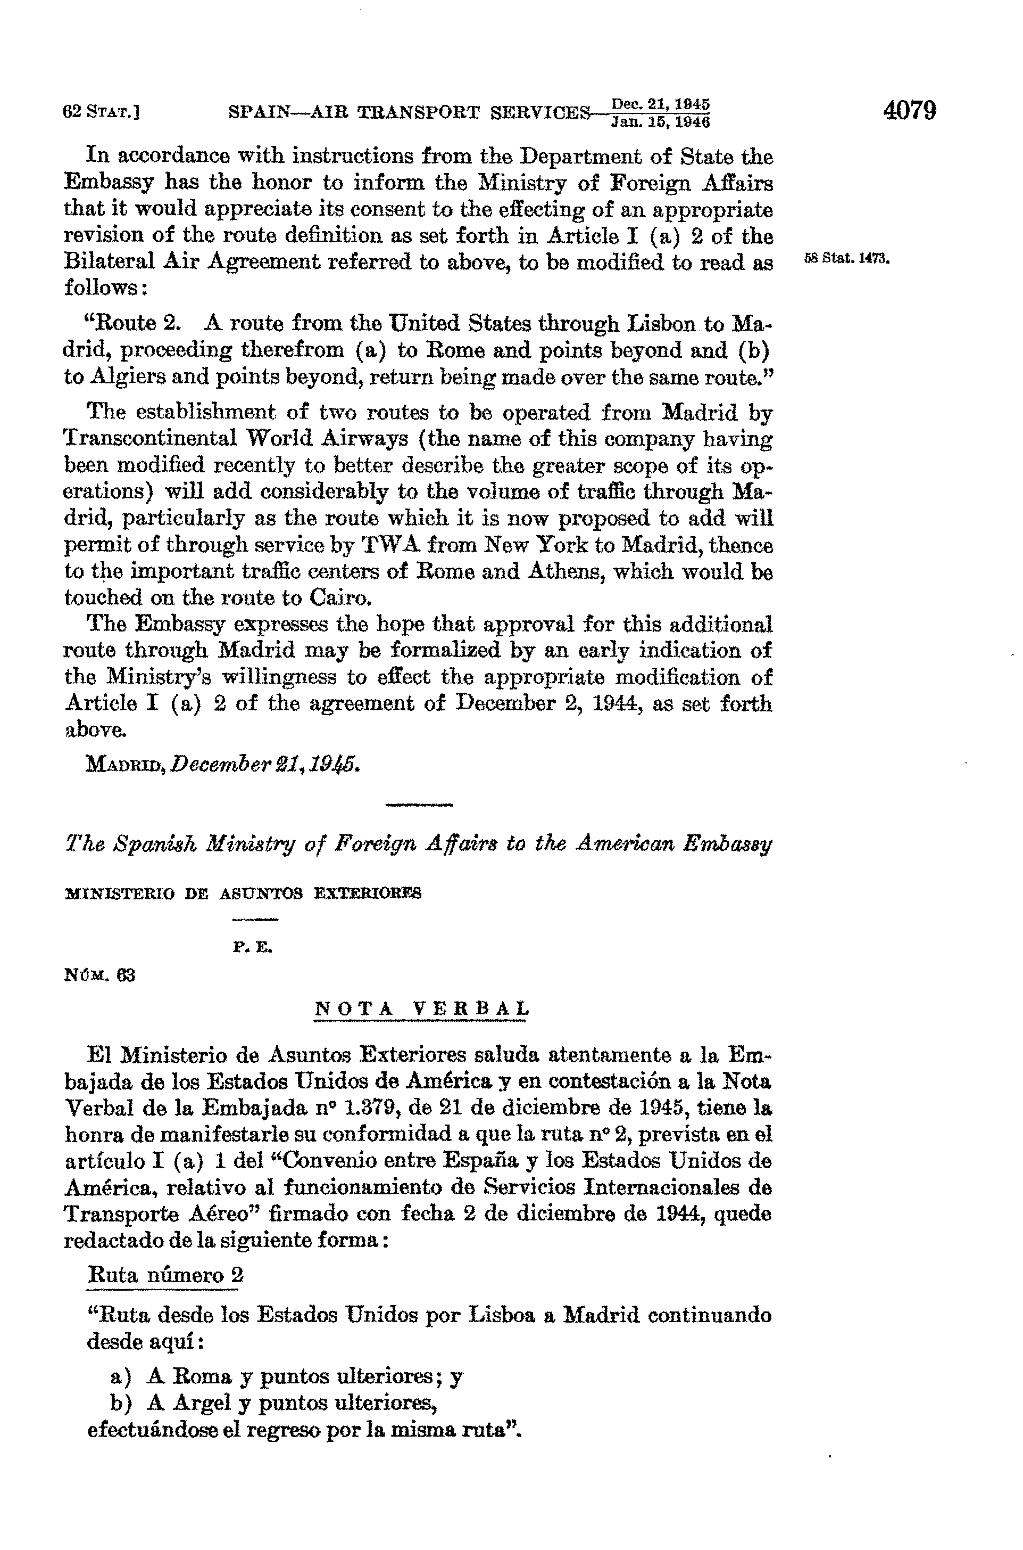 Ministerios De Asuntos Exteriores Page United States Statutes At Large Volume 62 Part 3 Djvu 1458